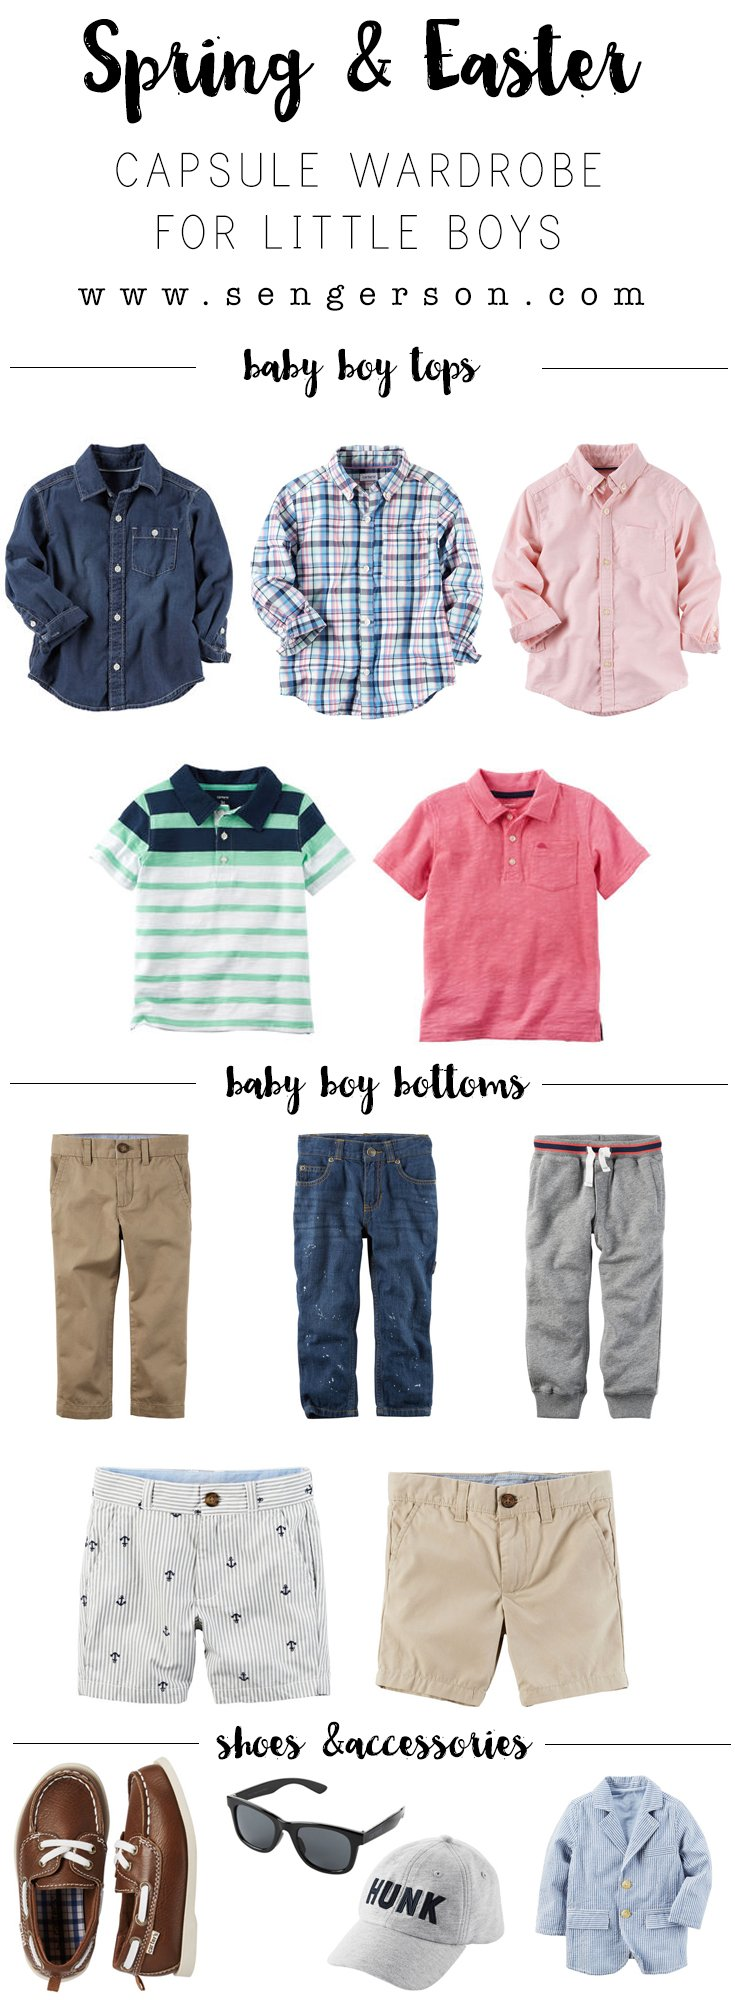 easter and spring capsule wardrobe for boys